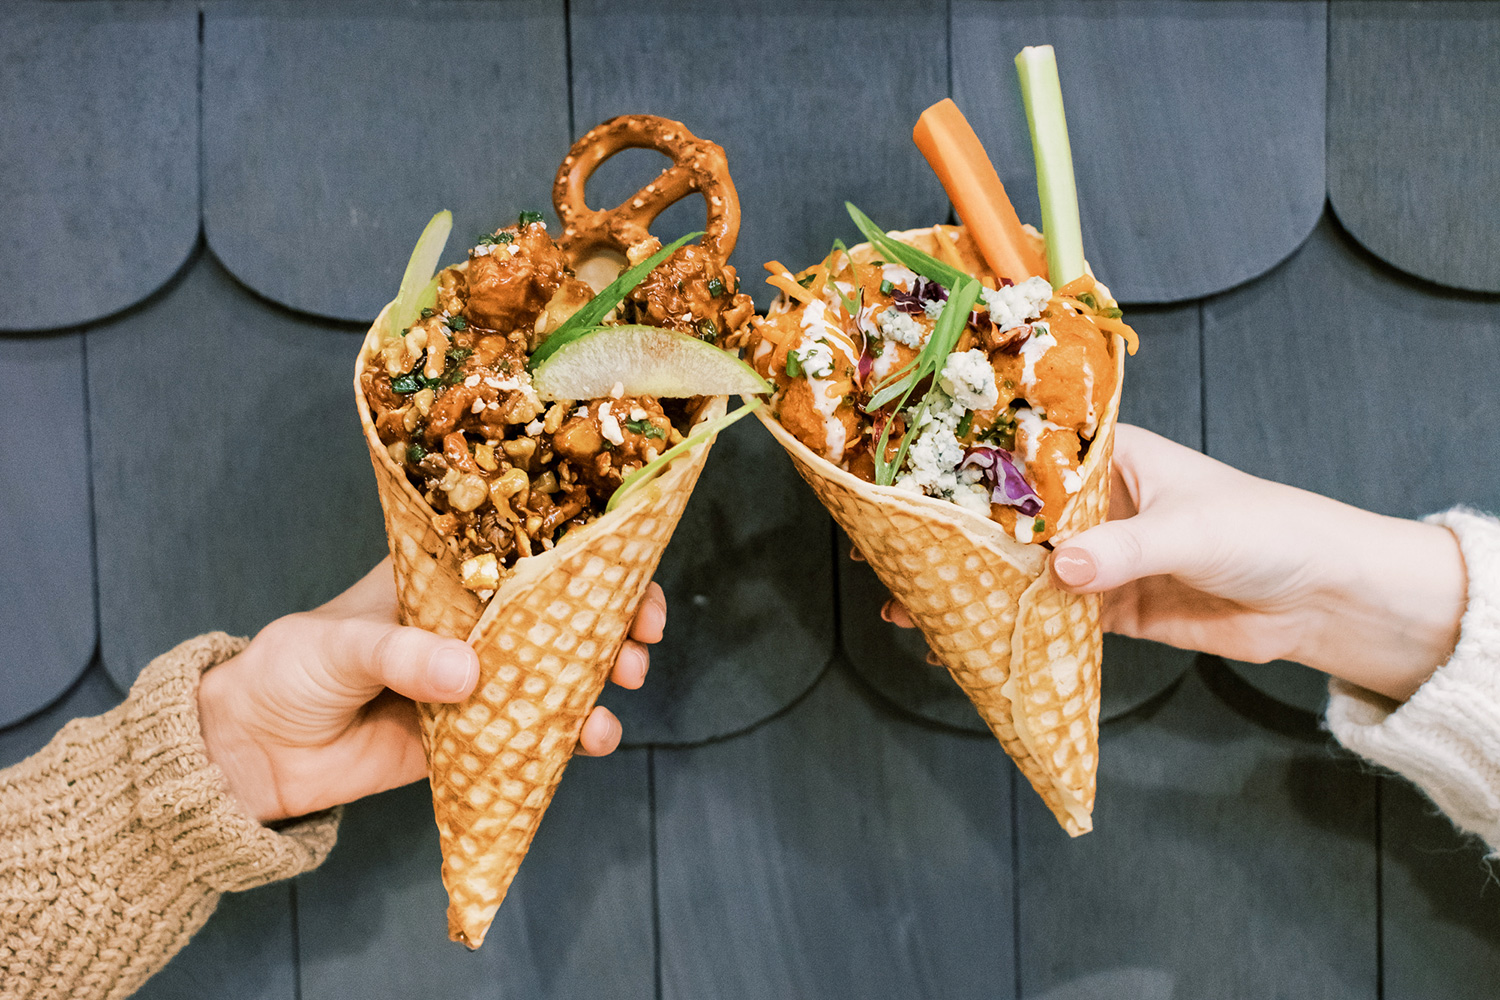 Buttercup Chicken Tenders Waffle Cones Order Plano Texas Legacy Food Hall